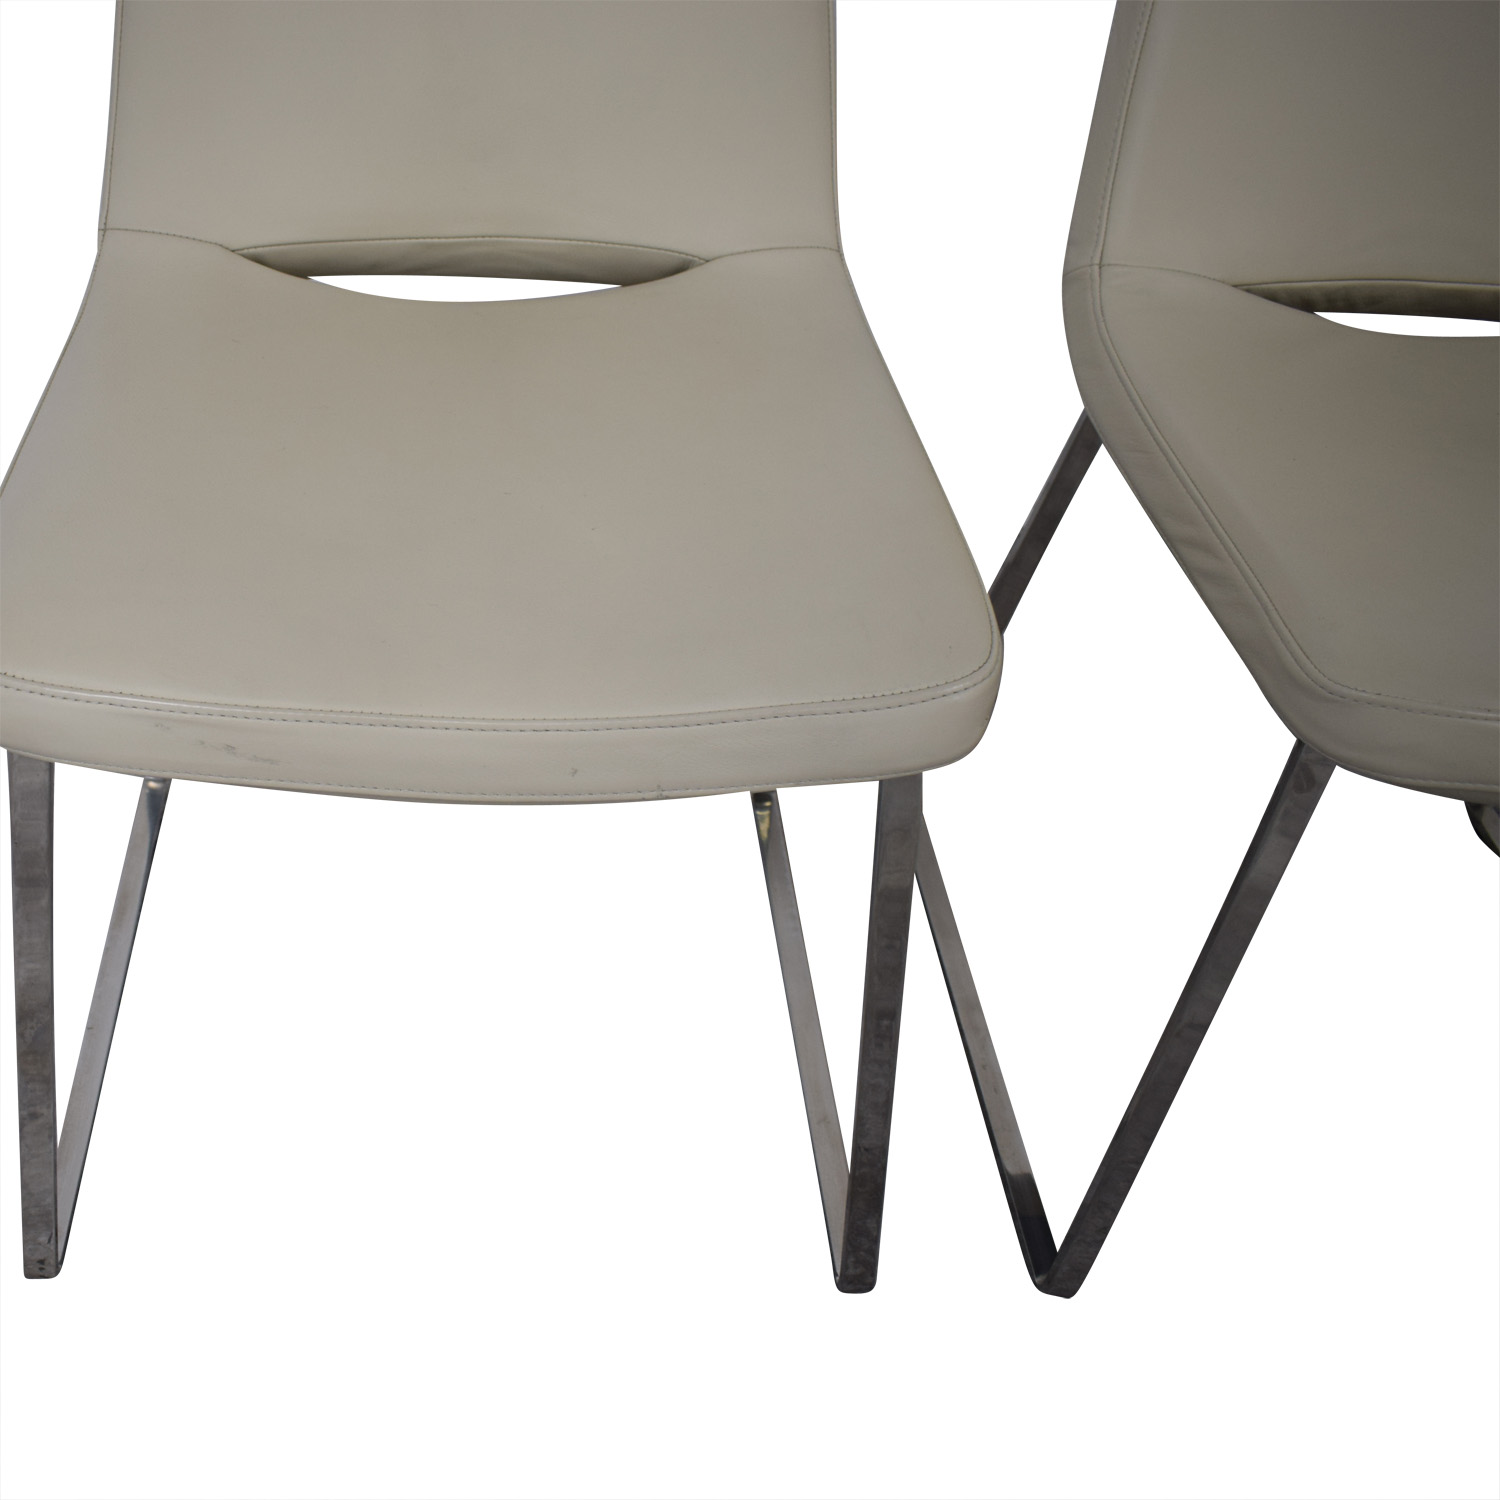 Tui Lifestyle Tui Lifestyle Leather Dining Chair Set for sale